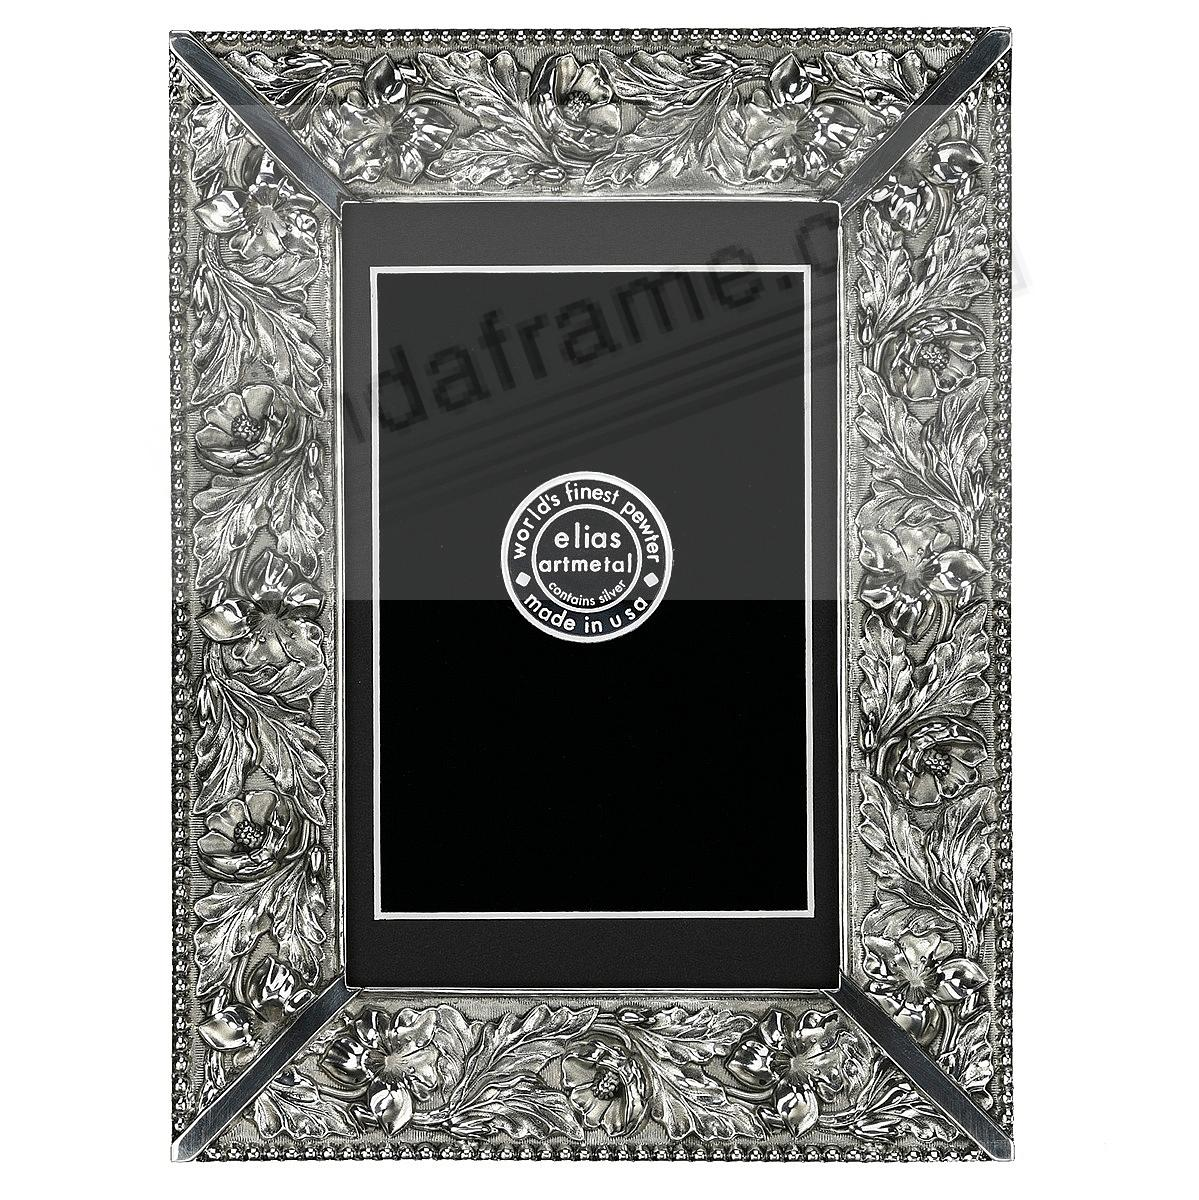 WEDDING FLOWERS Fine Pewter 4x6/3&frac12;x5&frac12; frame<br>by Elias Artmetal&reg;